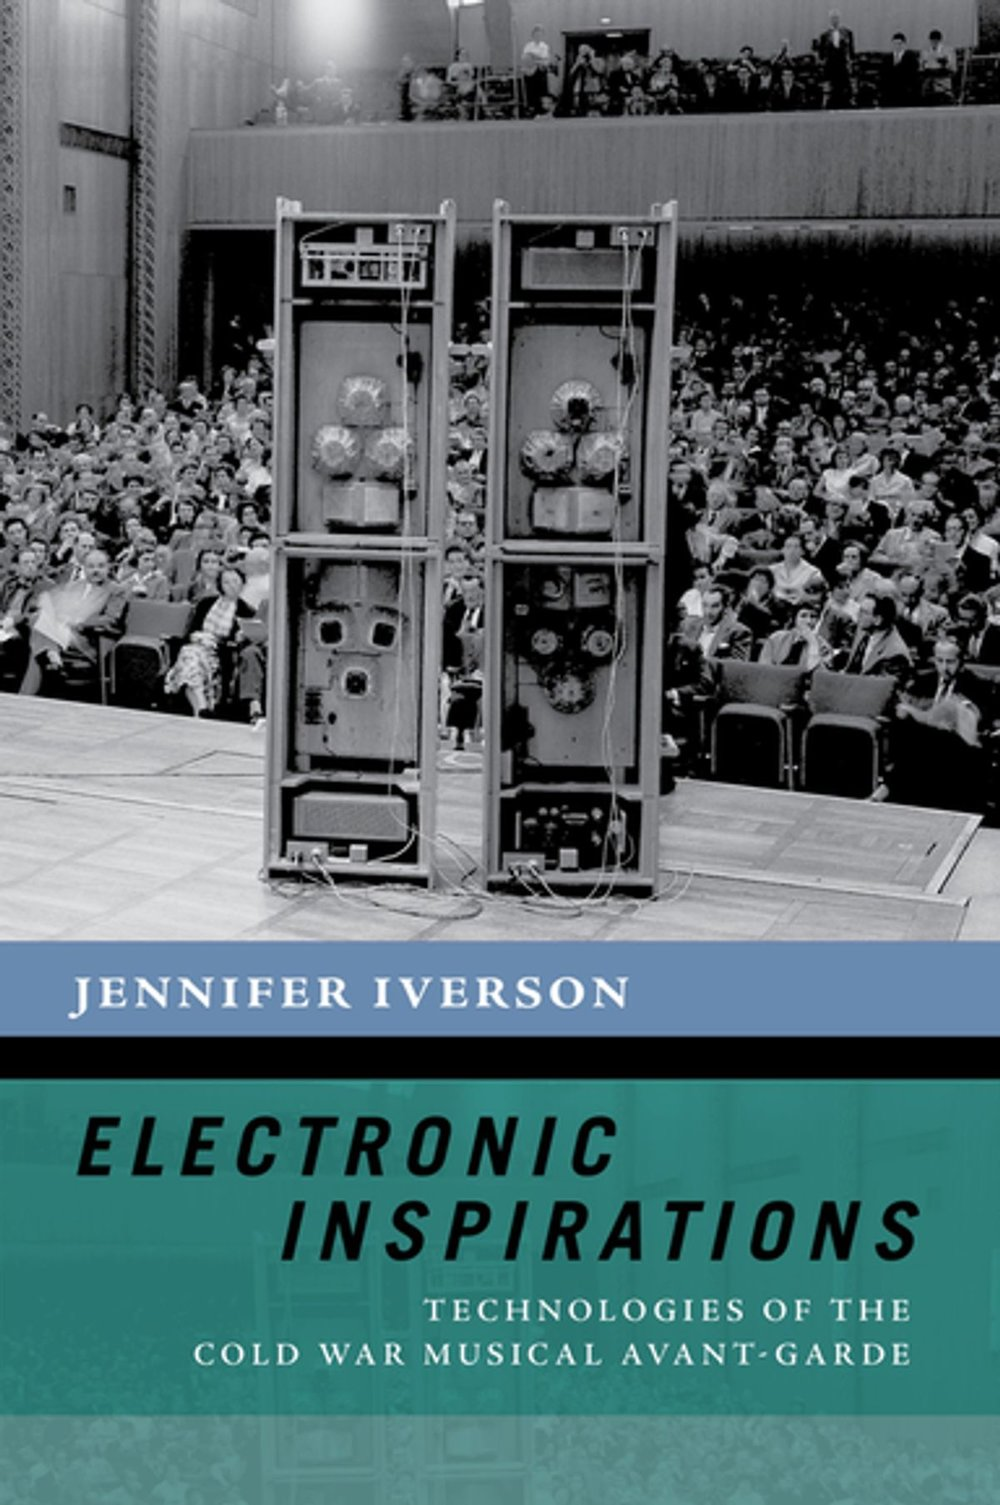 "Editing & Indexing - Jennifer Iverson, Electronic Inspirations: Technologies of the Cold War Musical Avant-Garde (Oxford University Press, 2018)❦""When a reviewer suggested my book manuscript would benefit from an 'activist copy-editor,' I was crushed. How dare he critique the writing I had worked so hard to polish? Once I got over the sting, I realized that writing can always improve. Through my colleague network, I found Josh. He fine-tuned my manuscript in ways that were genius—subtle, light-handed, and with real recognition of my organic voice. I loved receiving edited chapters and seeing that Josh had gently pushed my prose into balanced alignment. He was responsive, communicative, and—bonus—curious and knowledgeable about the subject of my book. It was a true pleasure to work with him, to read his brilliant index, and to geek out together along the way. I appreciated his every intervention, which made my book summarily better. A completely affirming experience. Highly recommended!""—Jennifer Iverson, Assistant Professor of Music at the University of Chicago"